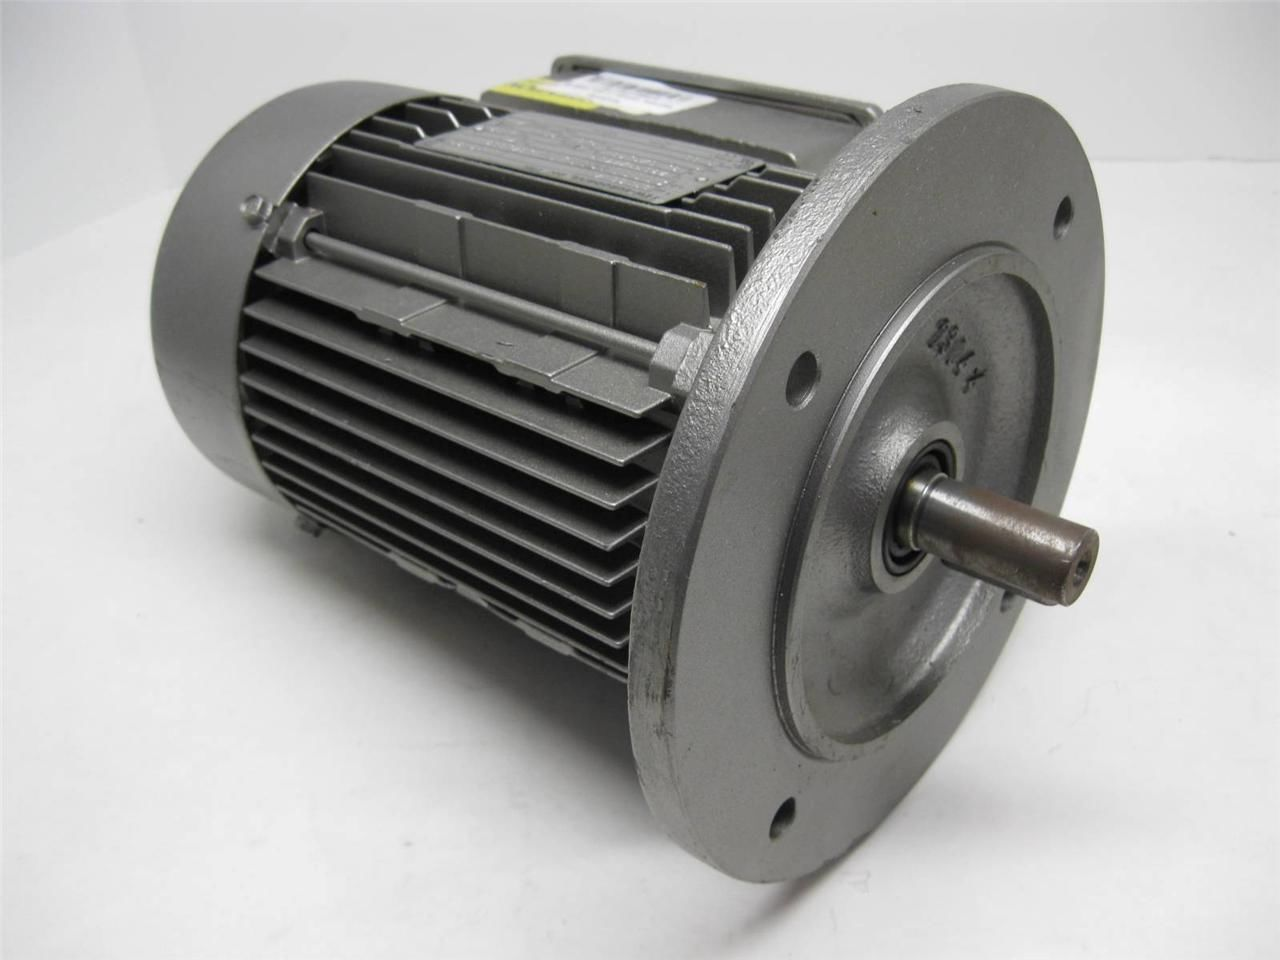 Sew Eurodrive Dft80n4th Electric Motor Tefc 1hp 1700 Rpm